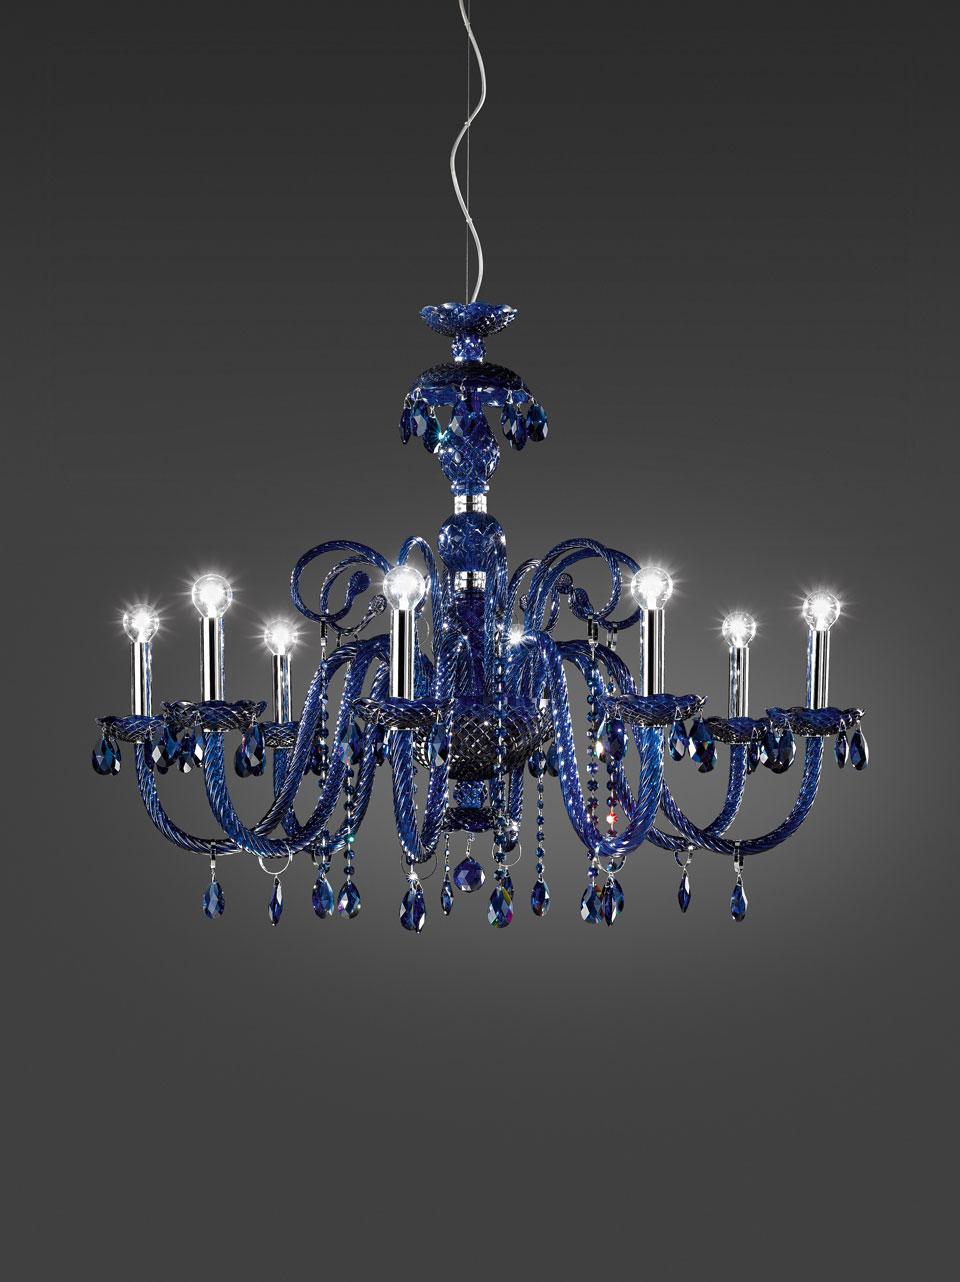 Evergreen blue crystal chandelier 8 lights and blue glass drops. Italamp.